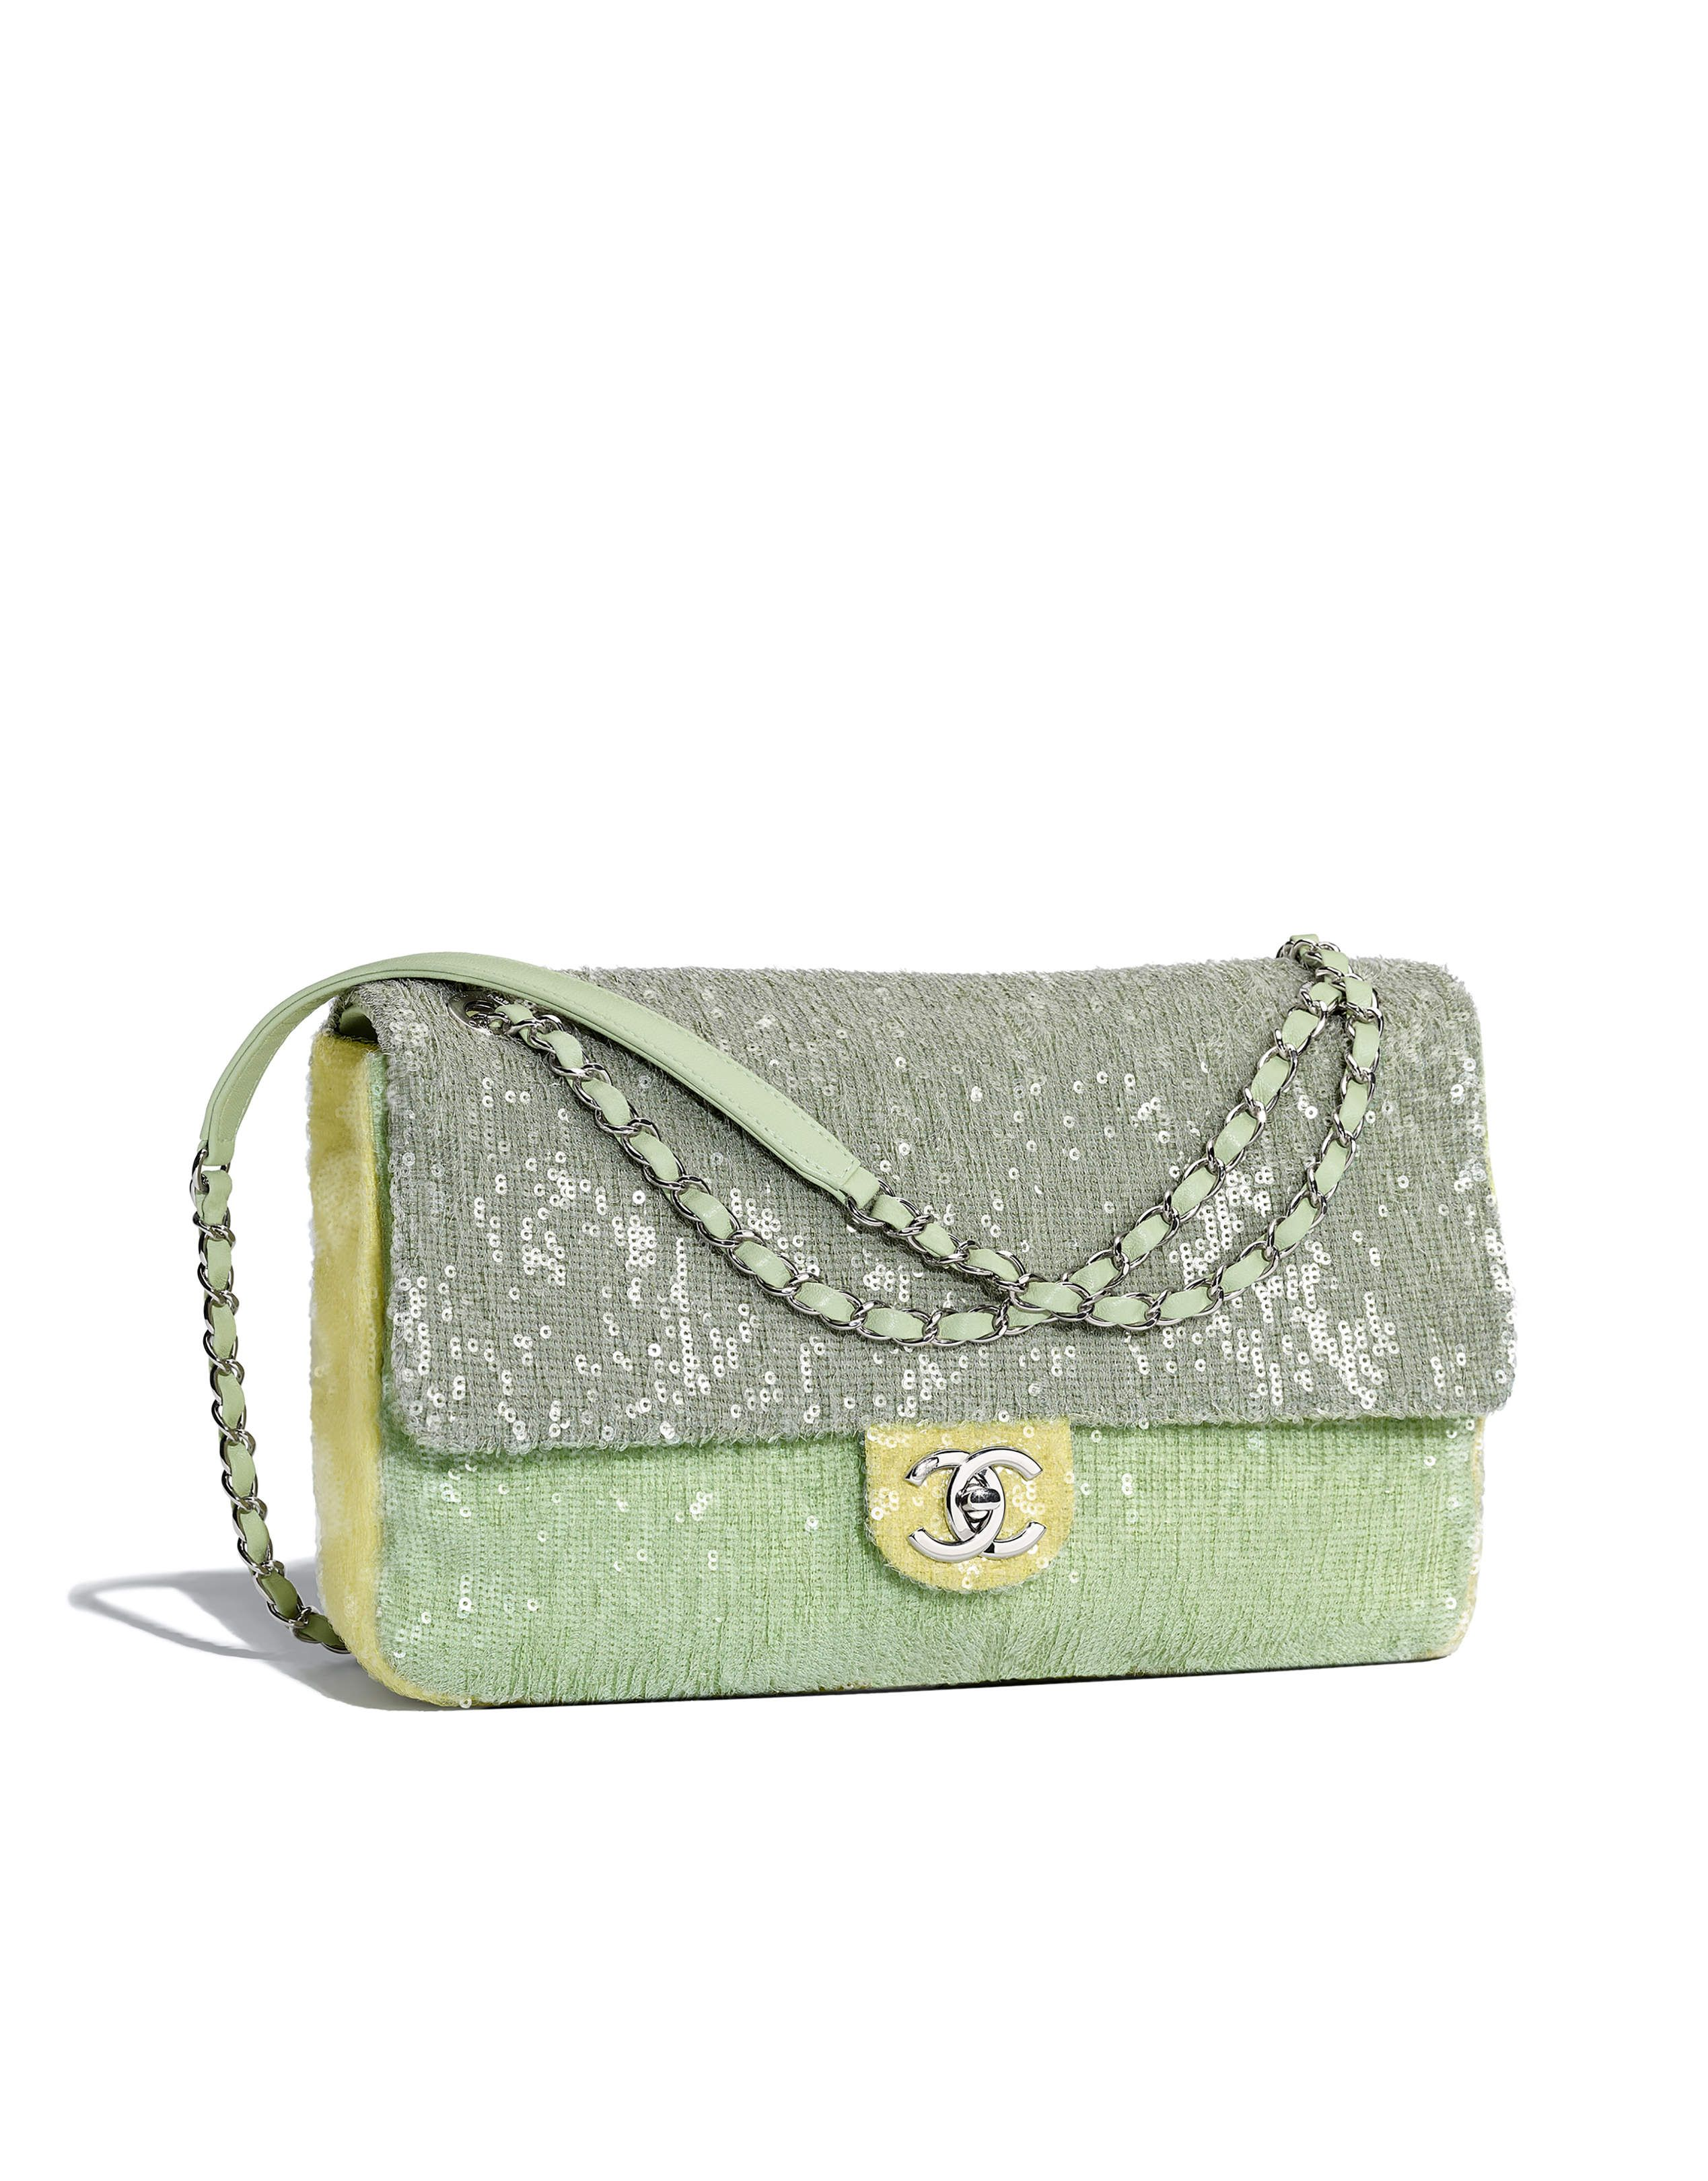 115f75c17c4 Chanel - SS2018 | Green, light green & yellow sequin flap bag | BAGS ...